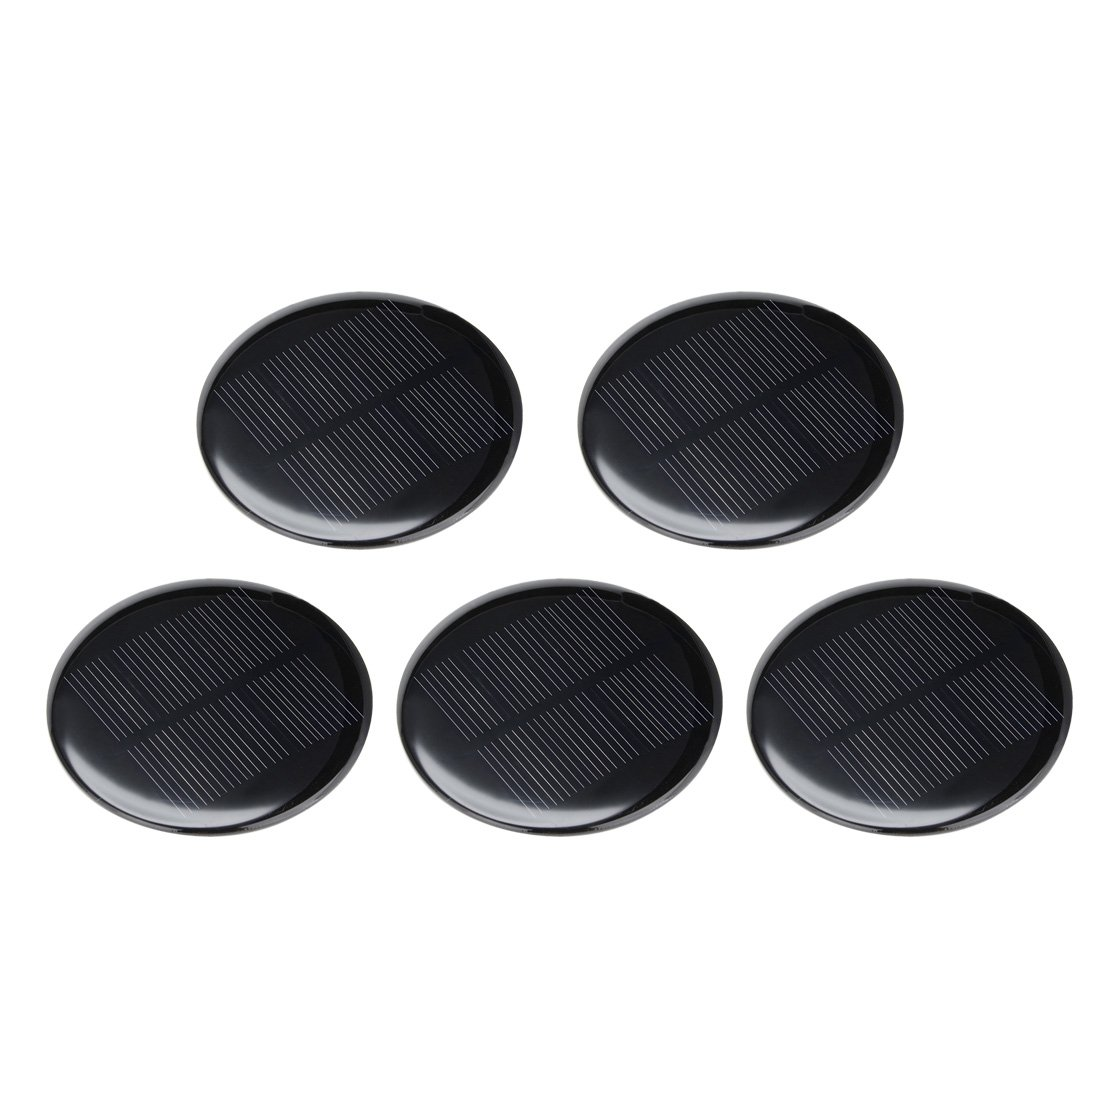 uxcell 5Pcs 4V 80mA Poly Mini Round Solar Cell Panel Module DIY for Phone Light Toys Charger 73mm Diameter by uxcell